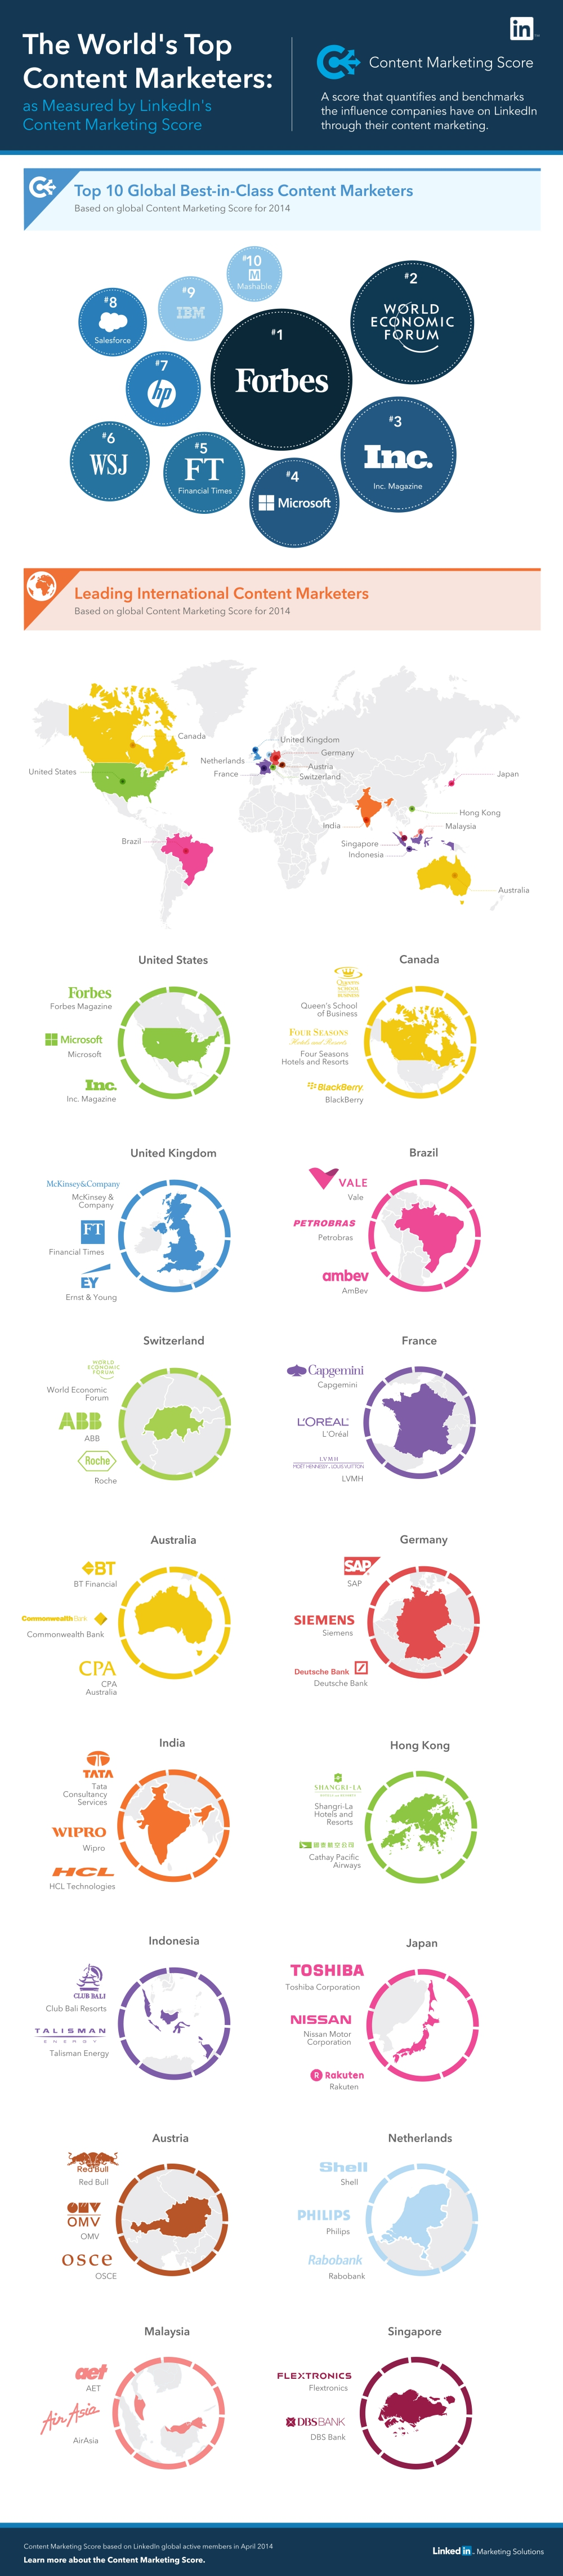 Most+Engaging+Brands+Infographic